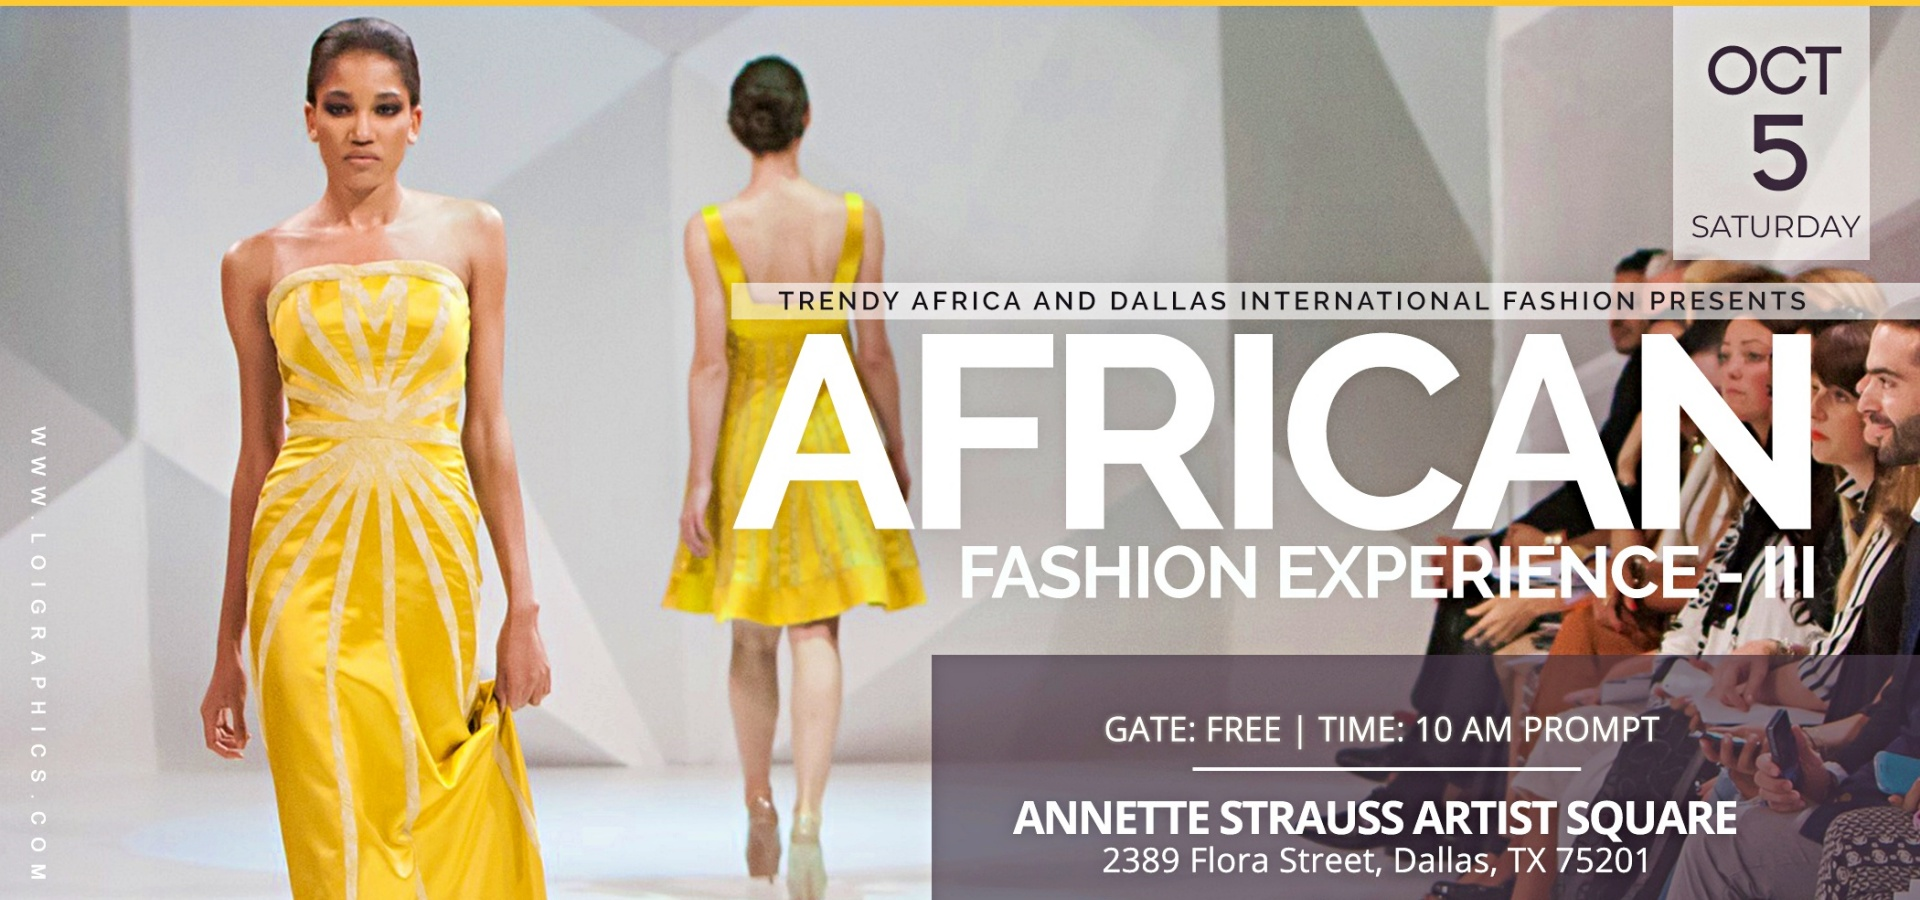 African Fashion Experience IV